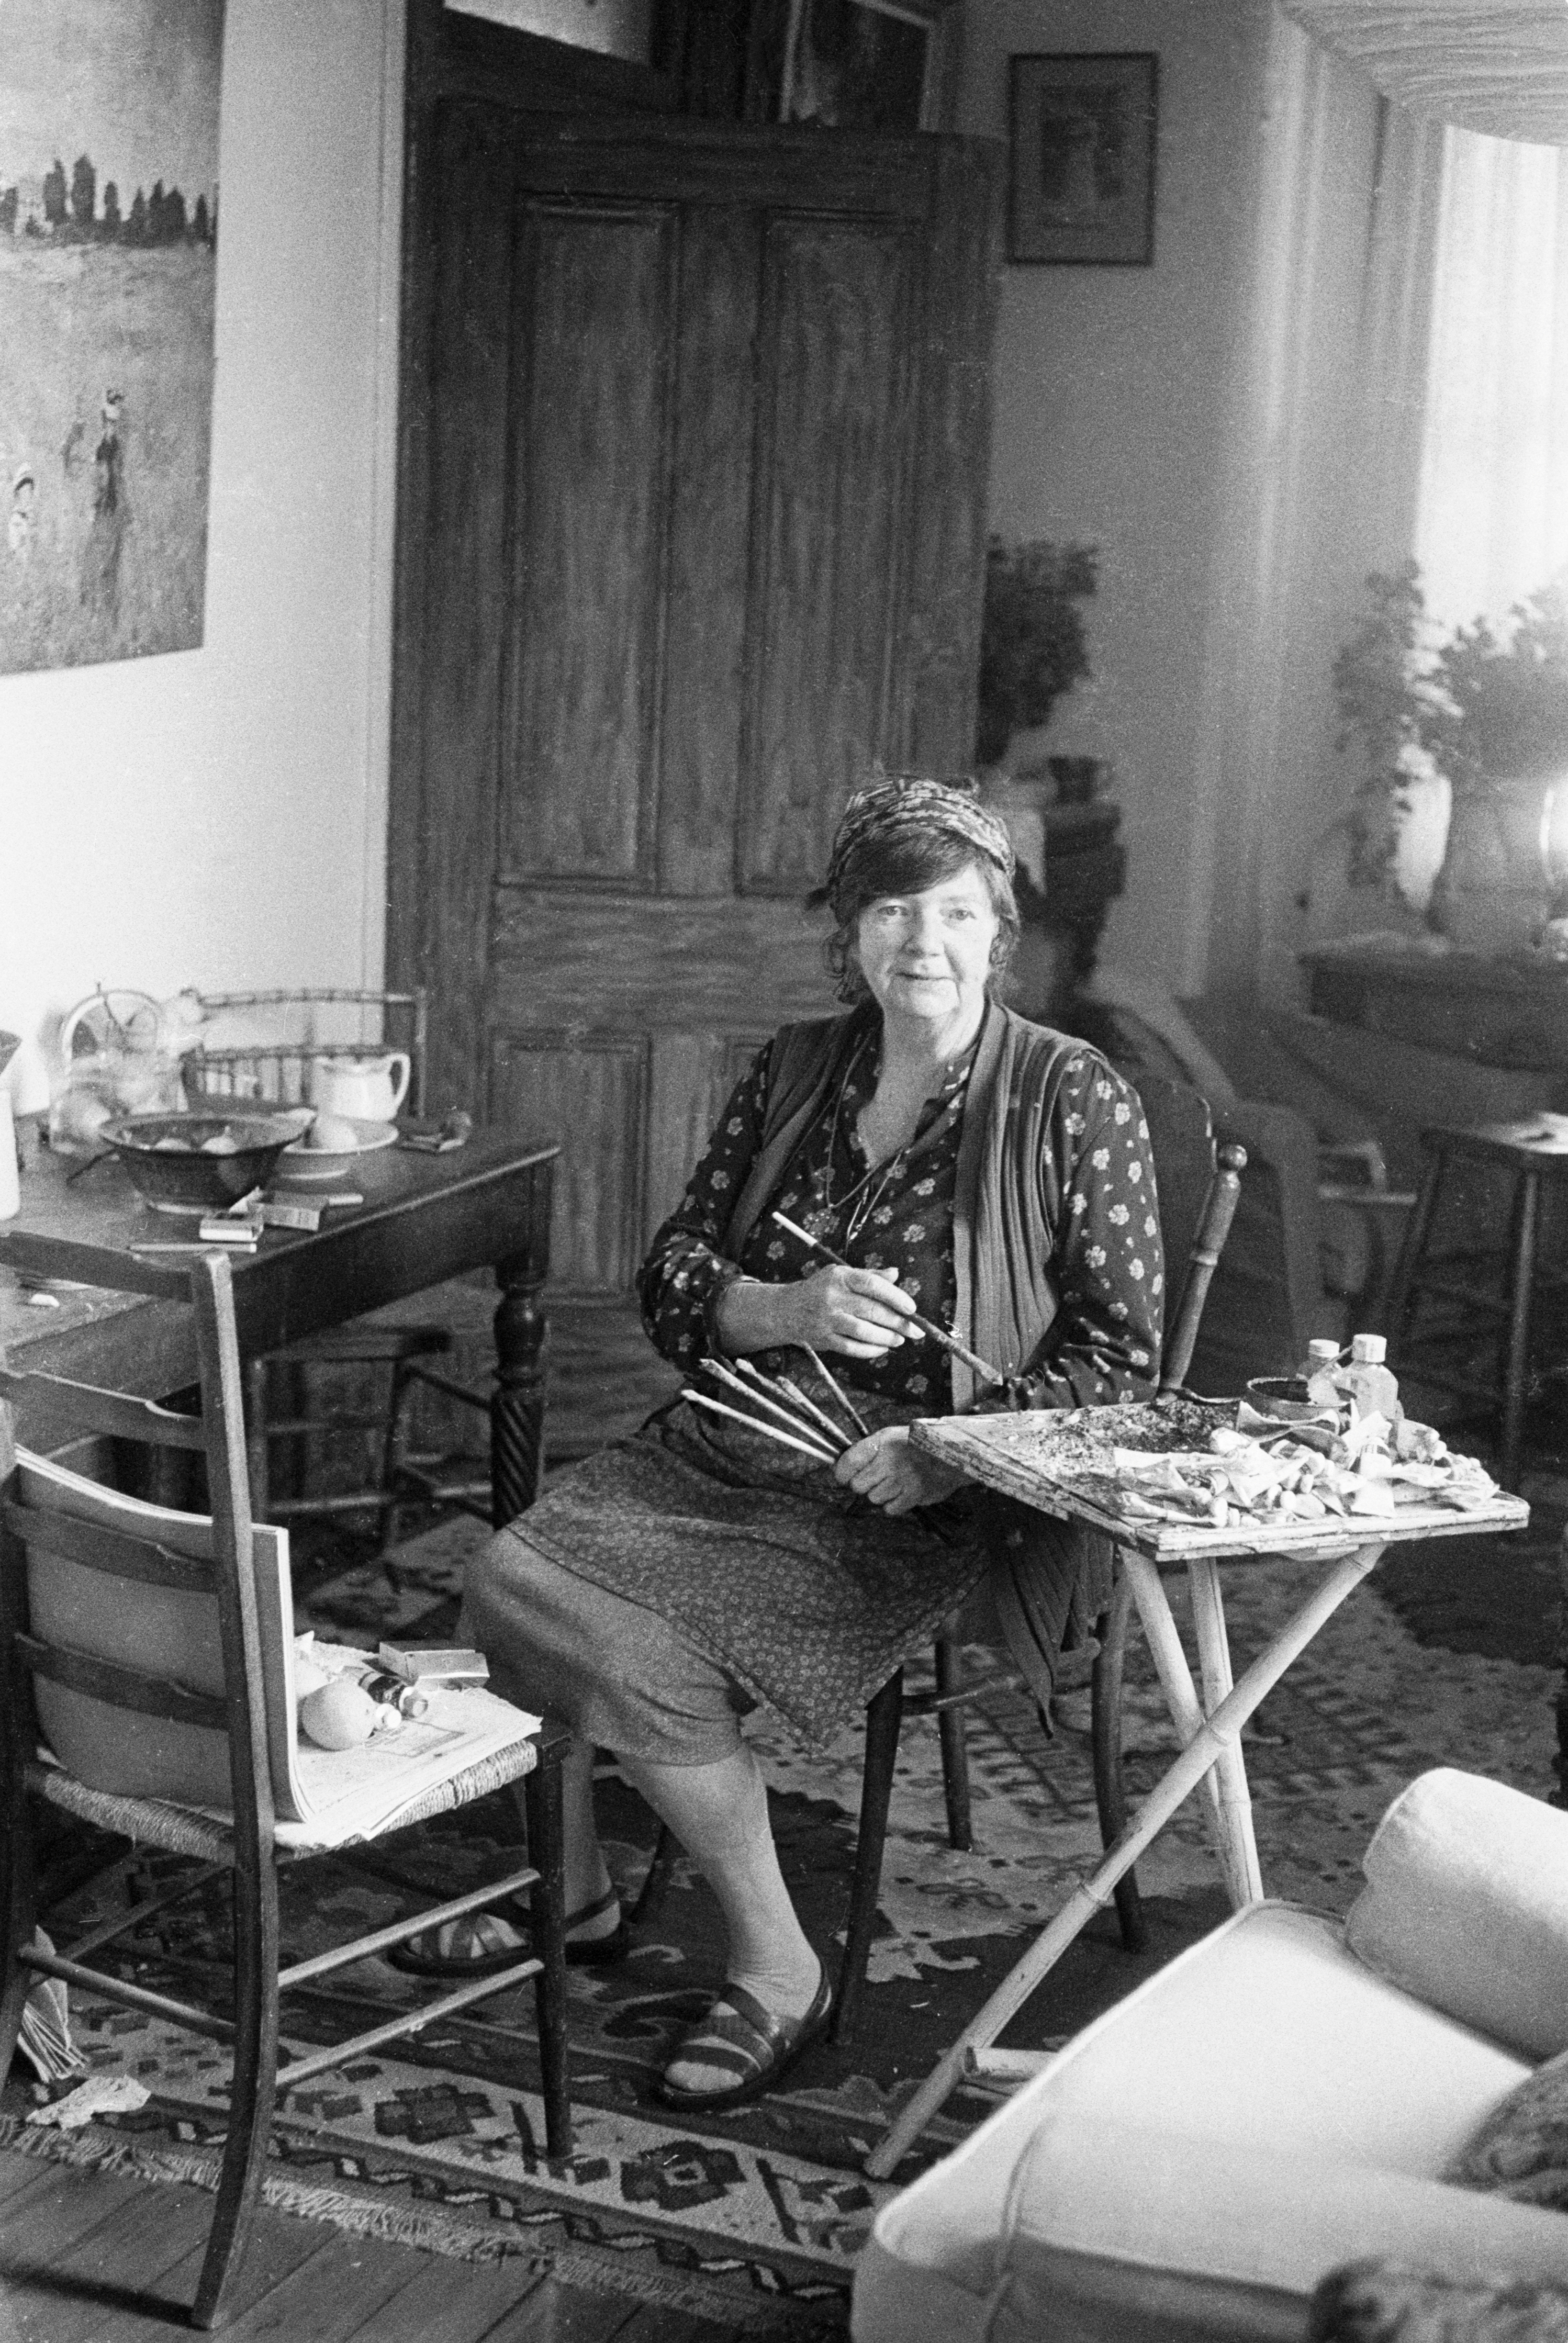 the life and literary works of margaret walker As early as age eleven, i had read poetry by langston hughes i met margaret  walker alexander in the fall of 1970 when i taught my first class at  as a  nationally acclaimed writer, margaret was a celebrity on campus and an  important role.